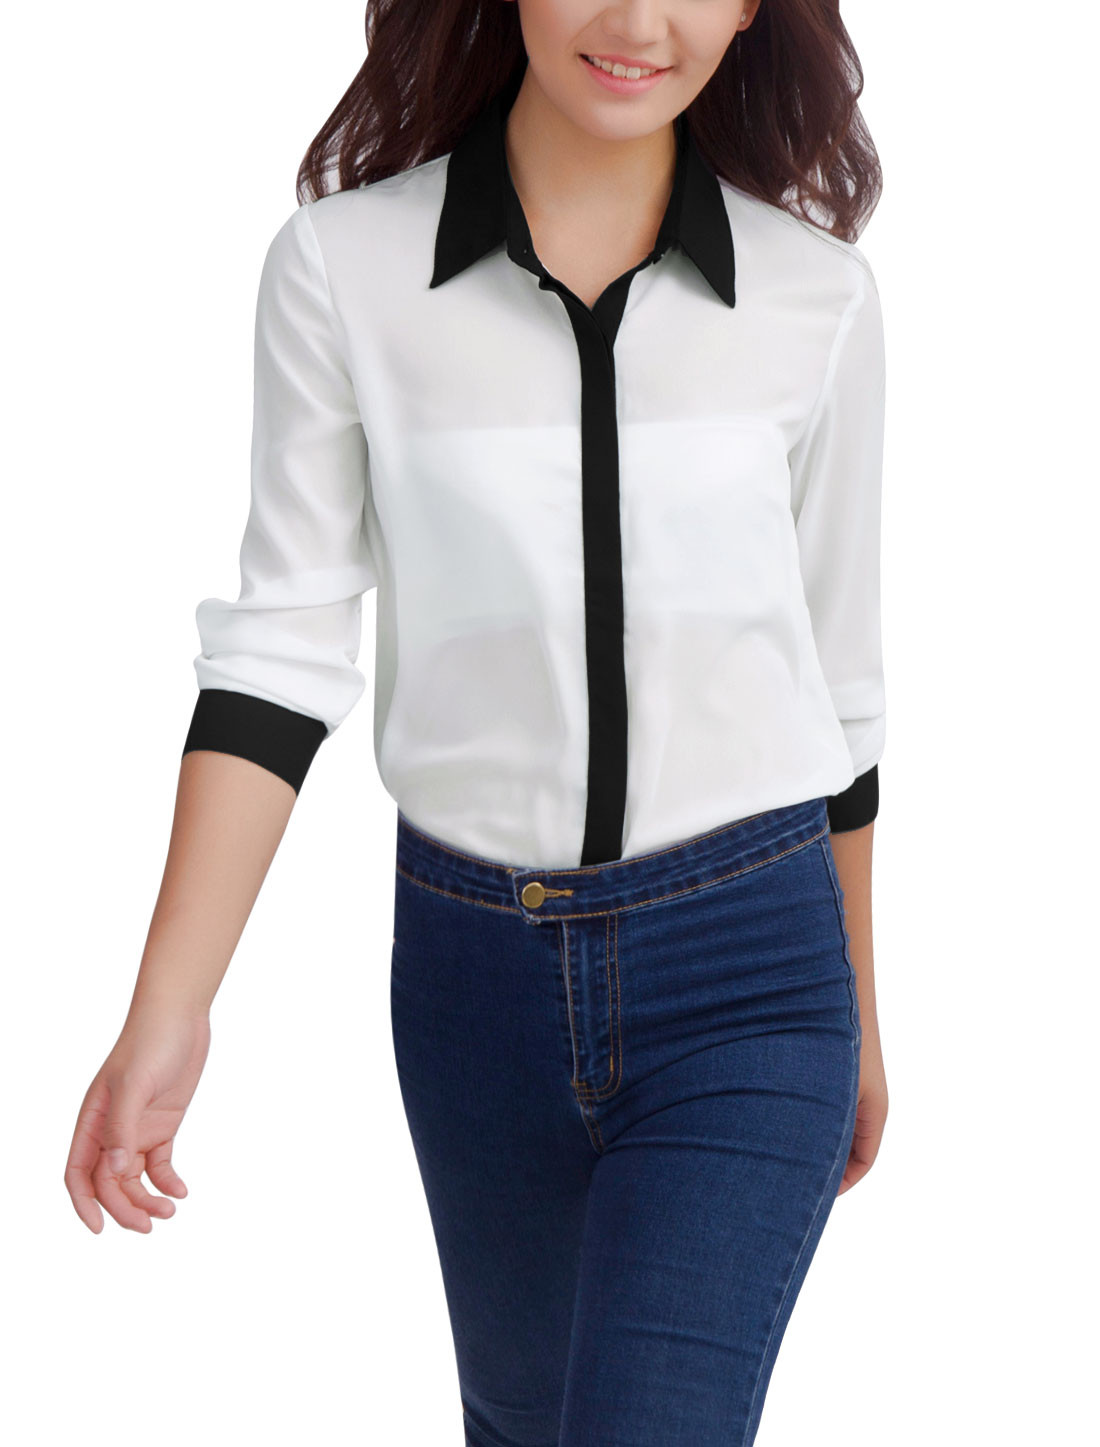 Stylish Point Collar Long Sleeve Buttoned Cuff White Blouse for Lady M